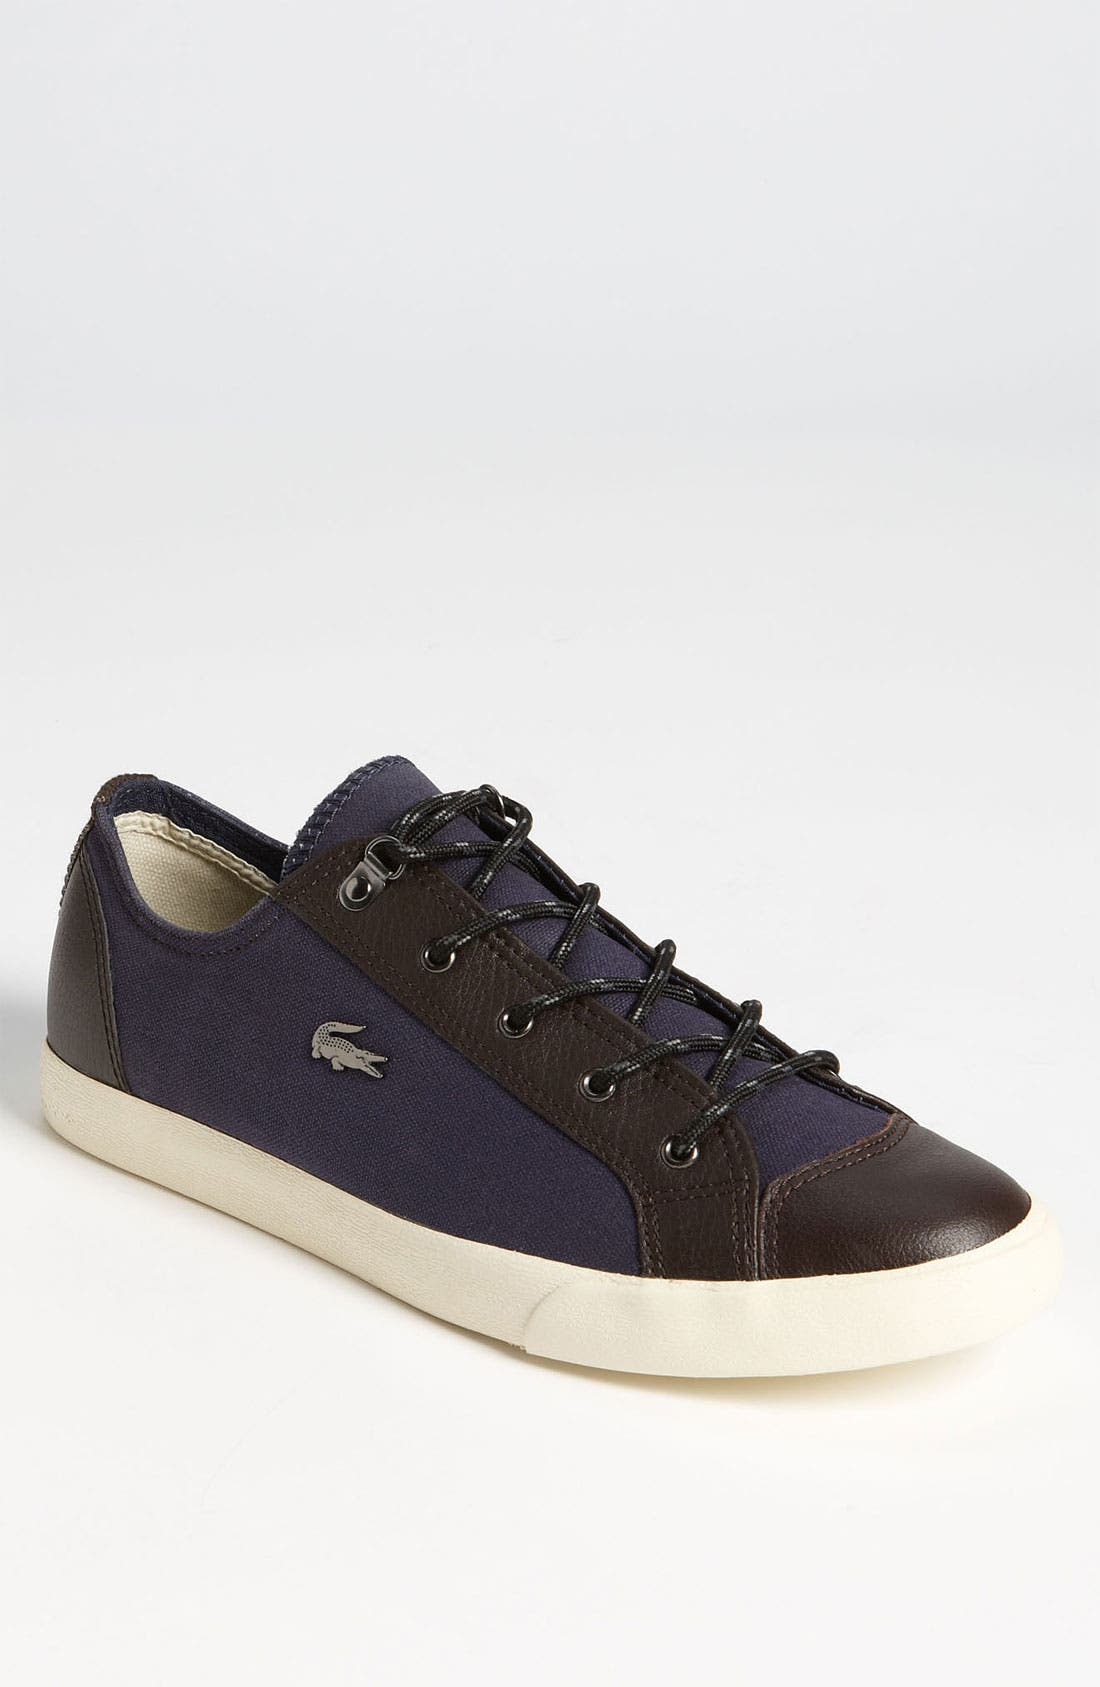 Alternate Image 1 Selected - Lacoste 'L27 Outdoor 2' Sneaker